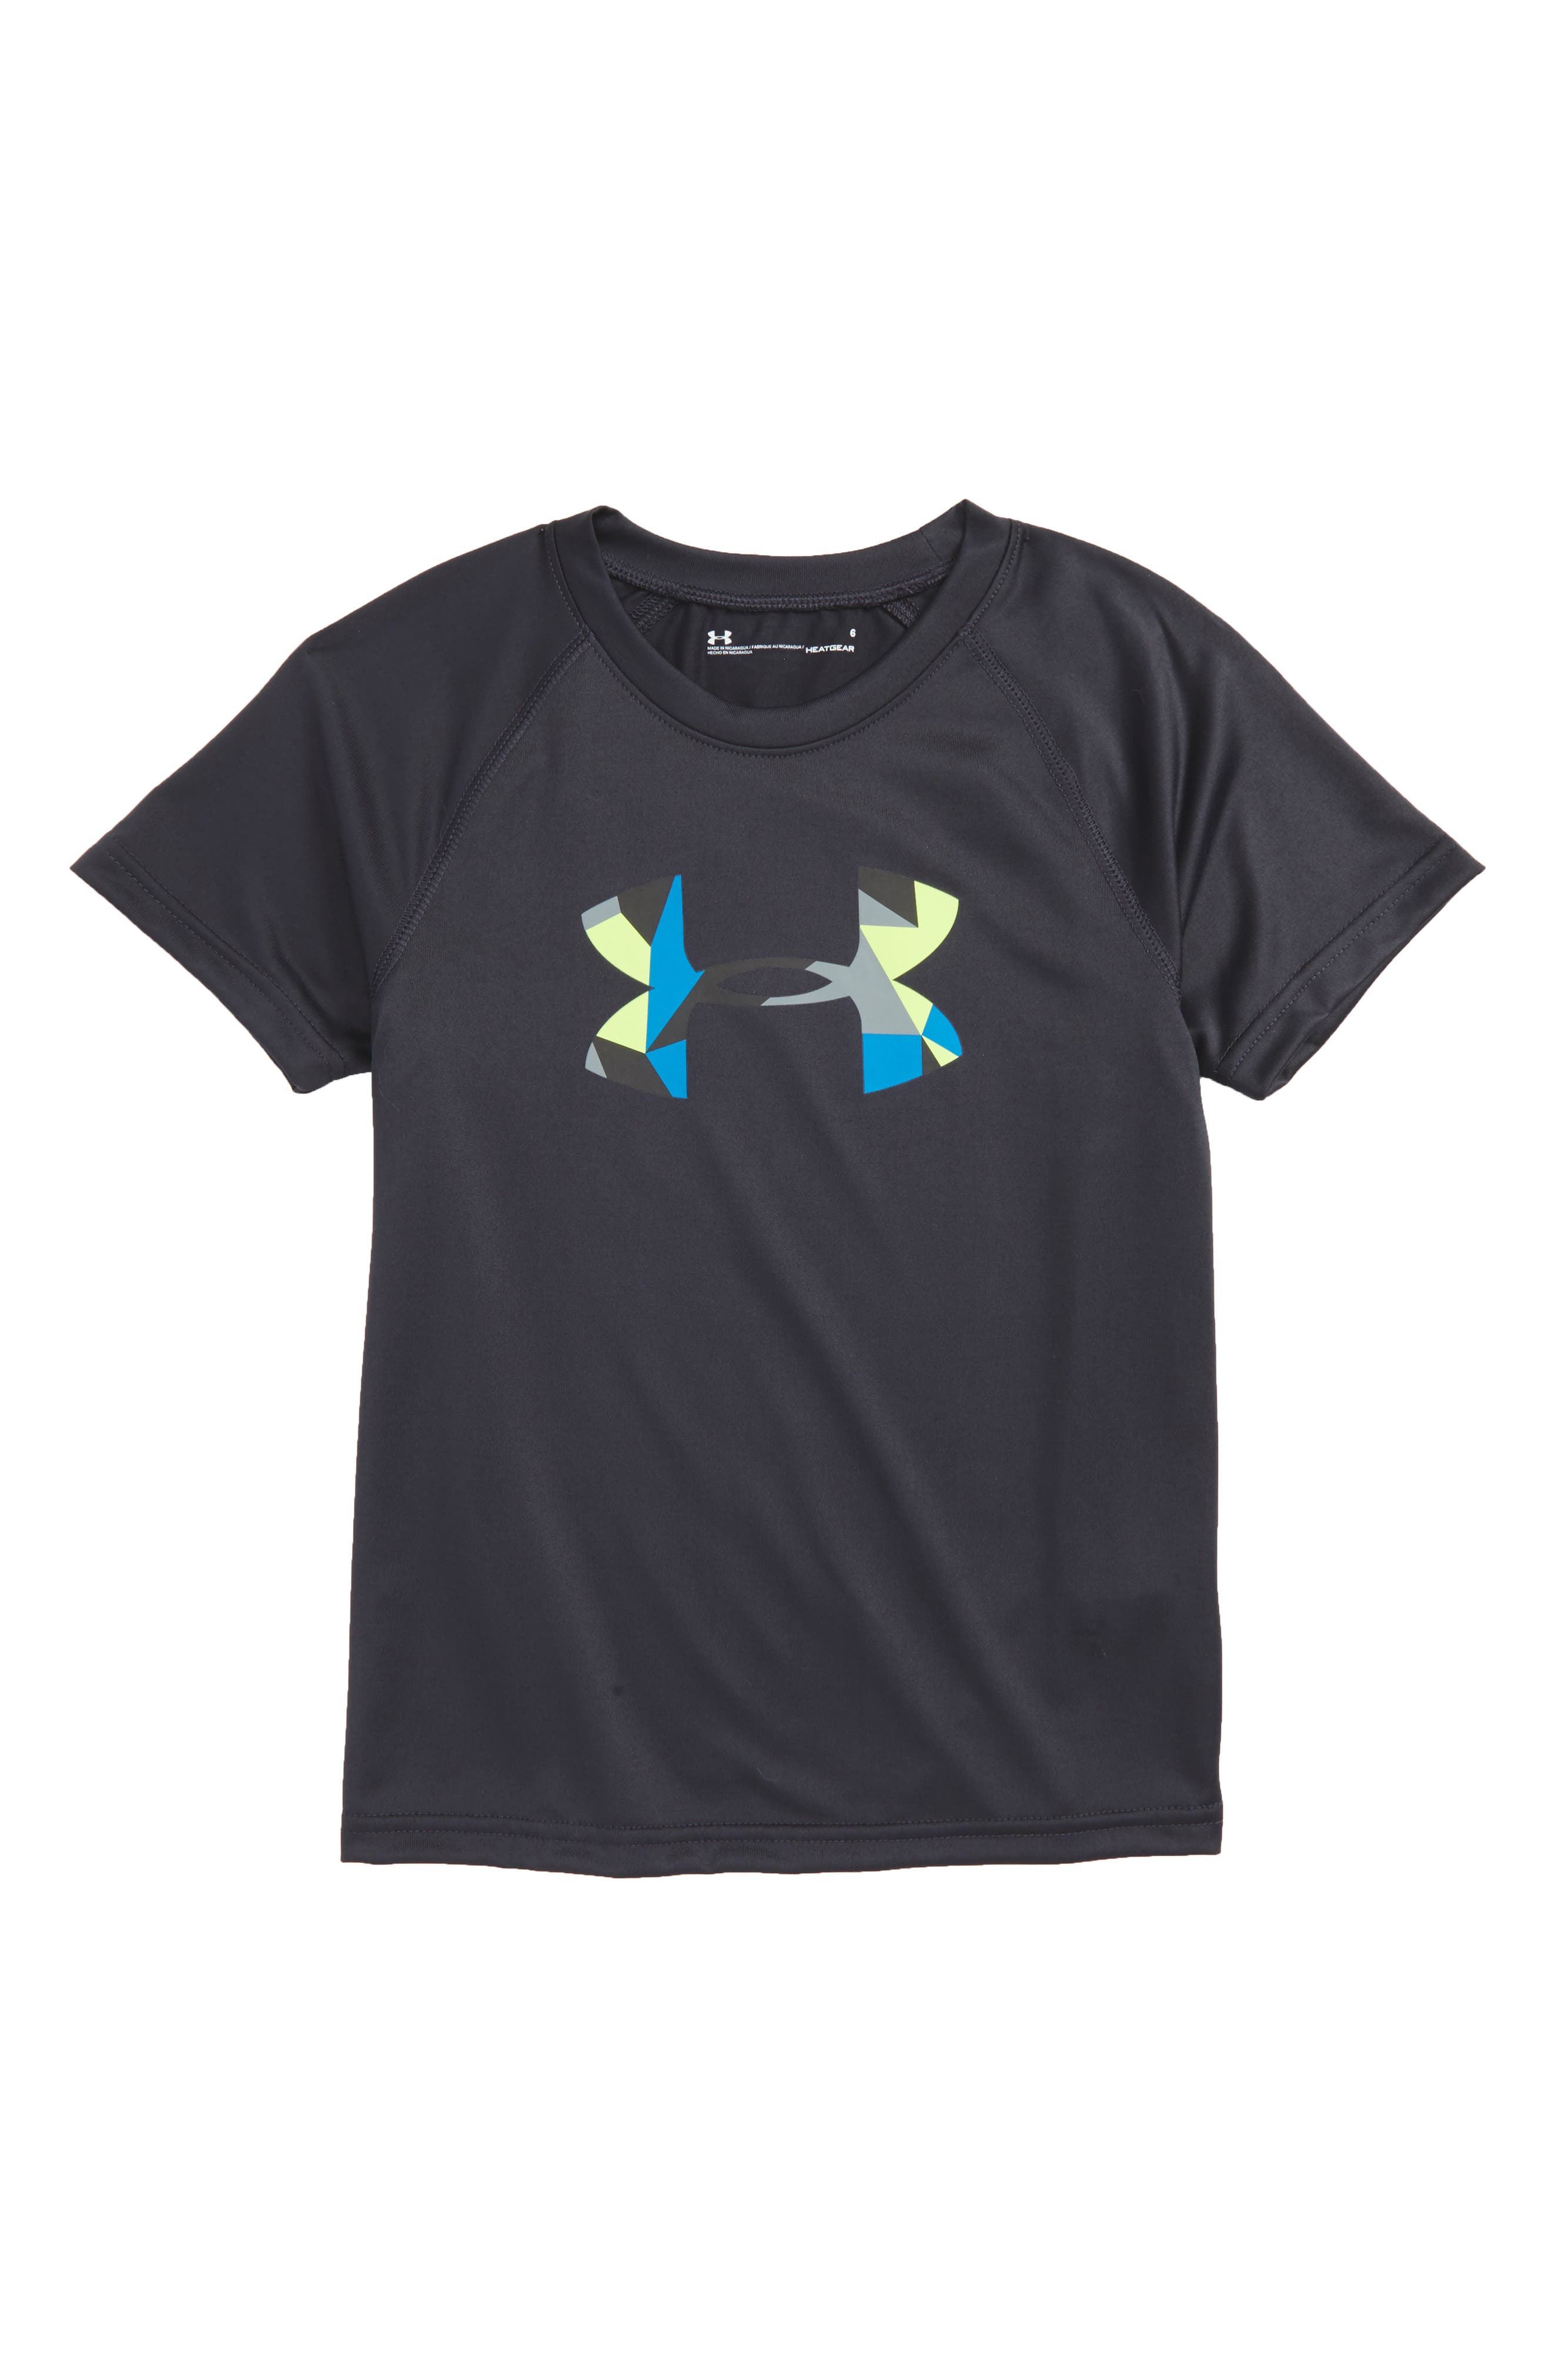 Main Image - Under Armour Geo Cache Graphic HeatGear® T-Shirt (Toddler Boys & Little Boys)